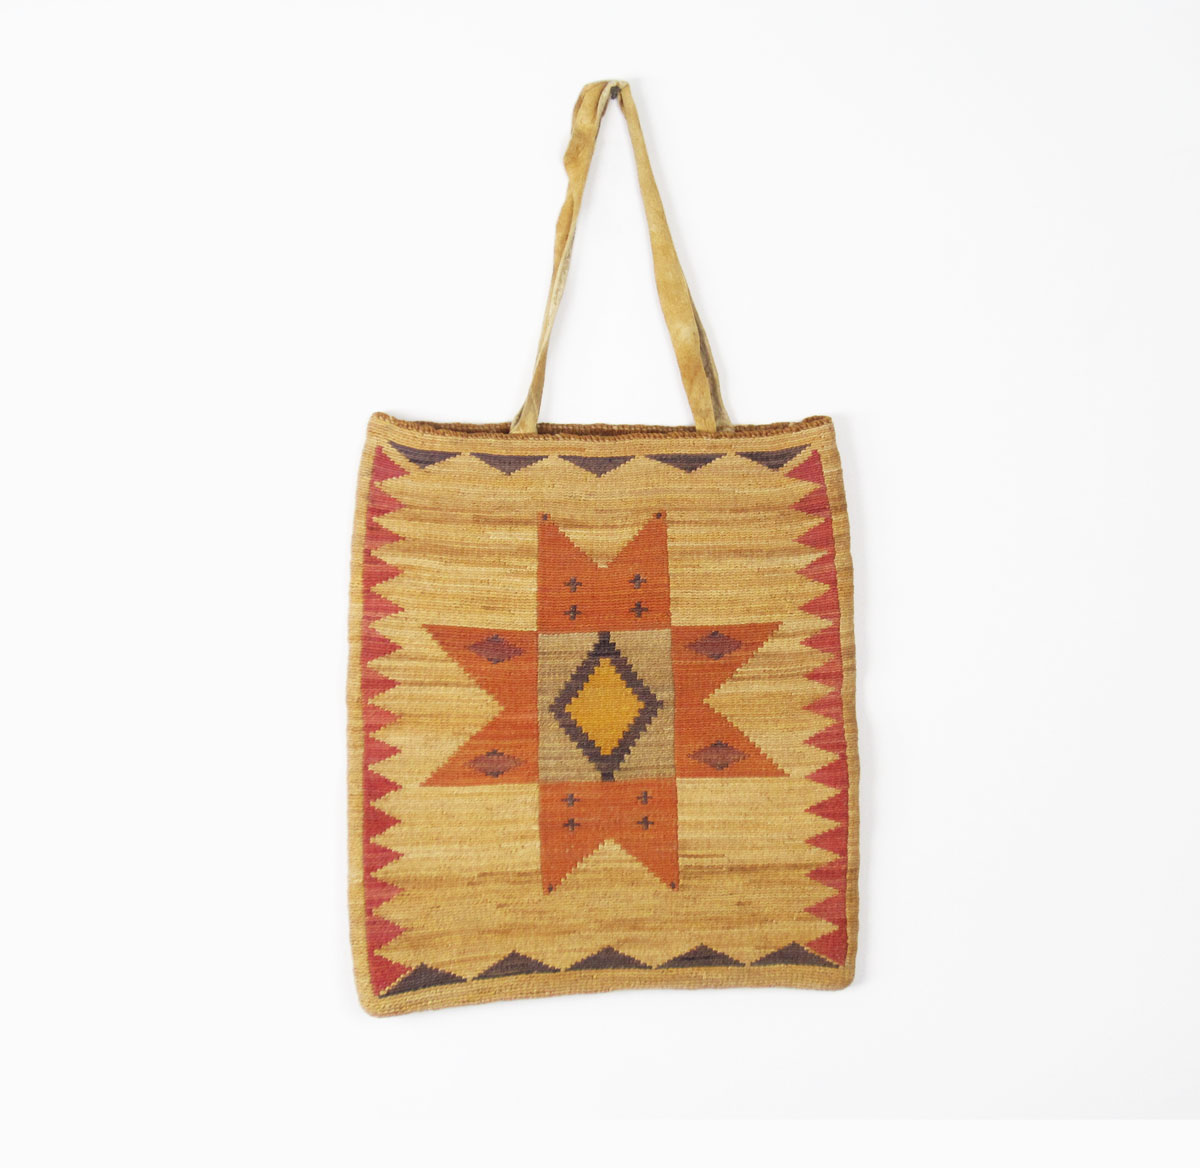 http://www.marcyburns.com/baskets-collection/nez-perces-cornhusk-bag-1